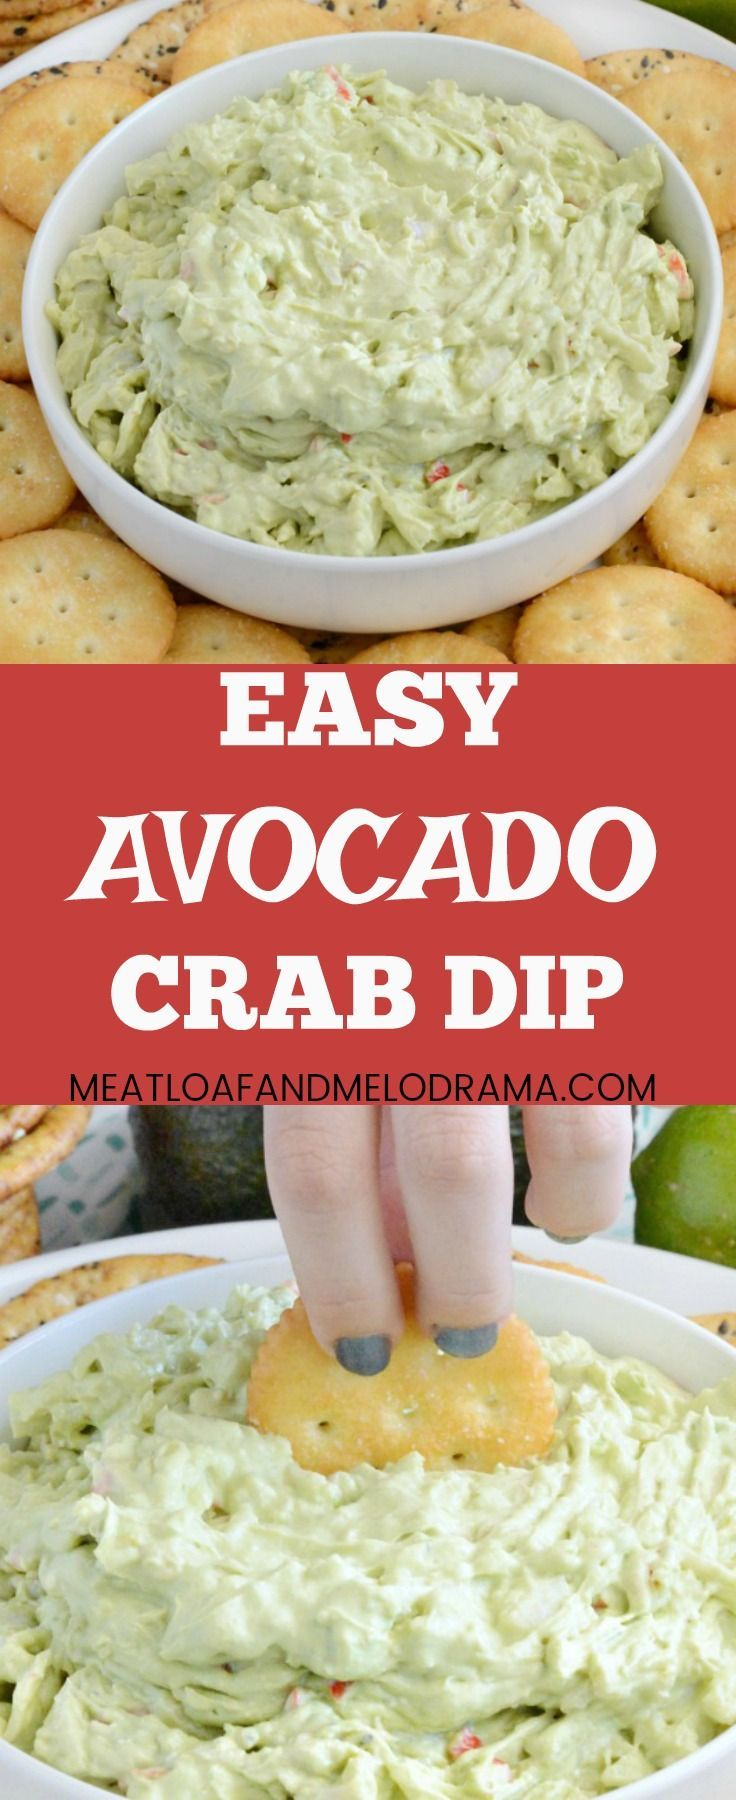 Easy Avocado Crab Dip - Quick and easy vintage cold crab dip recipe that is the perfect summer appetizer for parties, potlucks or holiday entertaining anytime. from  Meatloaf and Melodrama